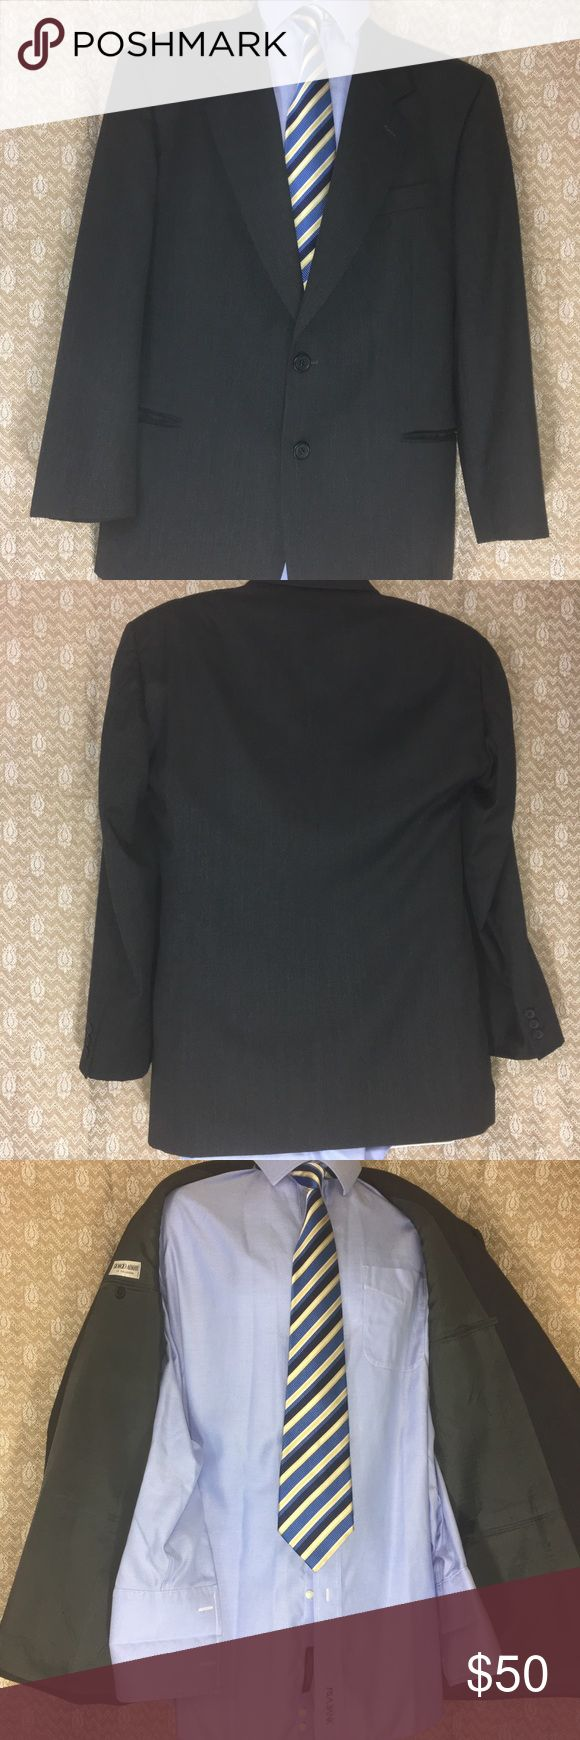 Armani blazer! Cleaned, pressed, and ready to impress! Nice charcoal color and great fit. Shown with Donald Trump tie that is included FREE if you buy the coat at full price. Dry cleaner tried to remove a stain but left it a tiny bit discolored. It's not a big deal but I'm set on not selling anything below a certain standard. The coat itself is MINT! Giorgio Armani Suits & Blazers Sport Coats & Blazers